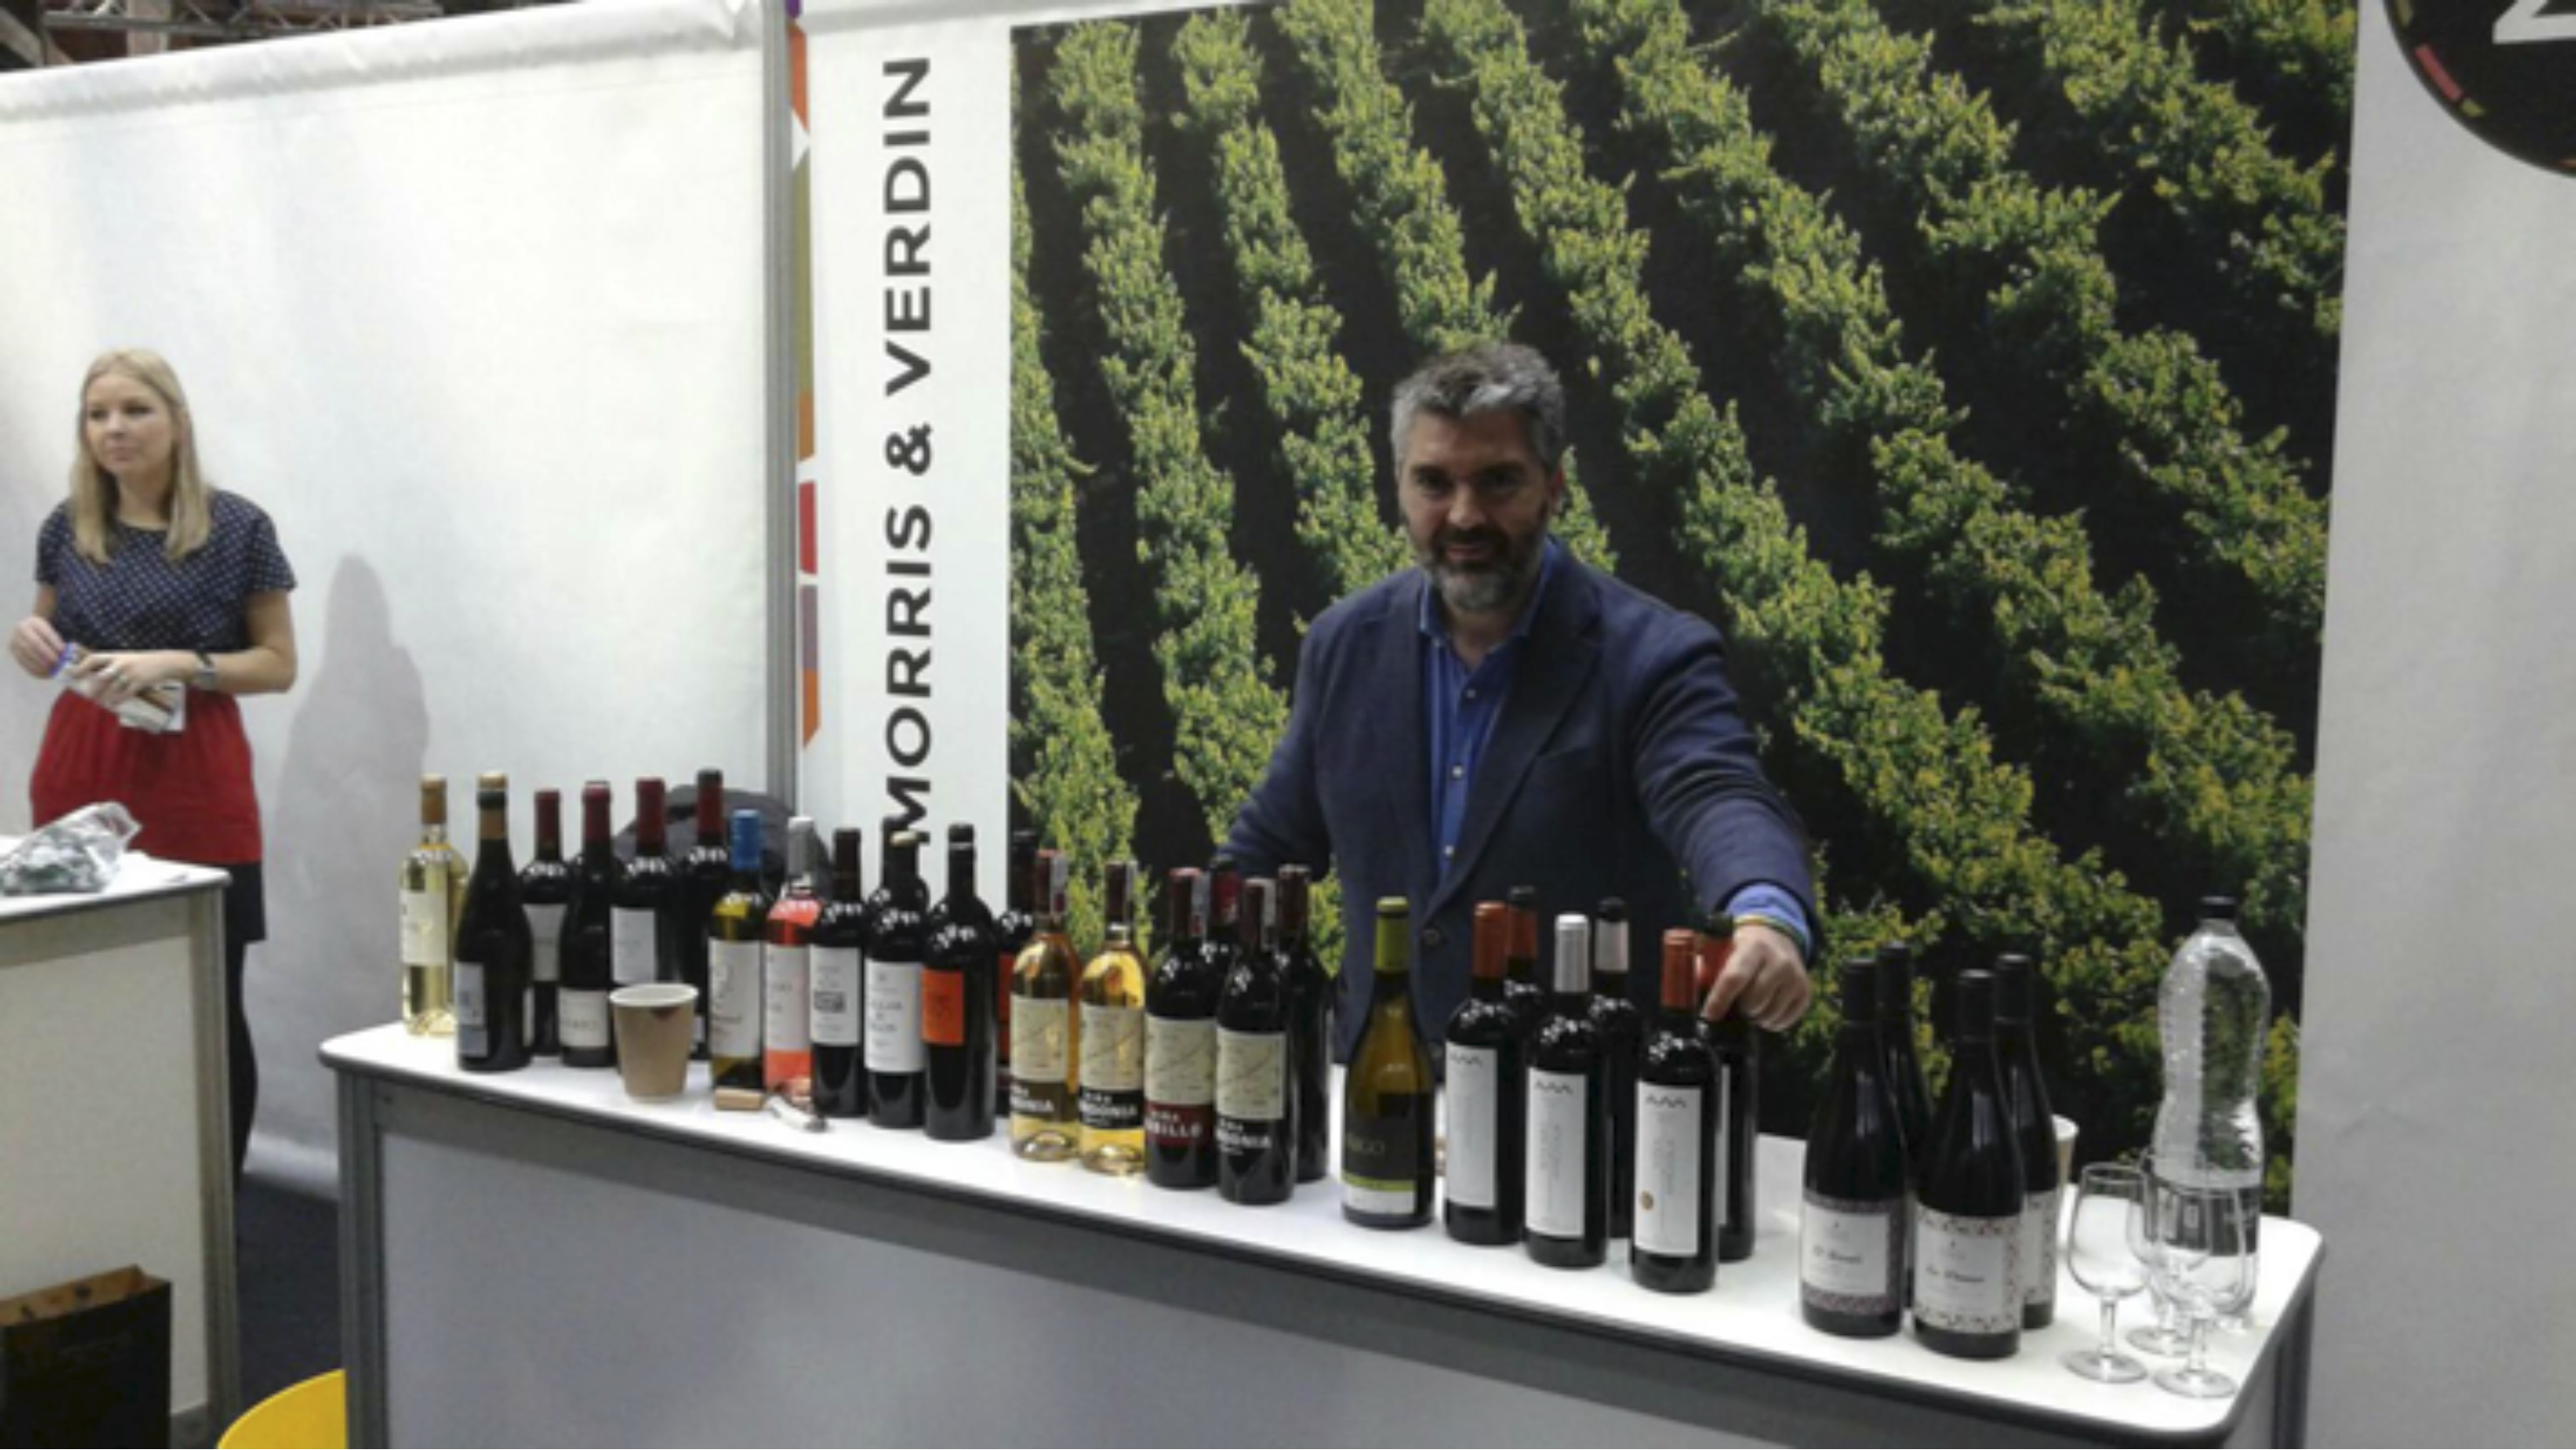 Wines From Spain Trade Fair de Londres